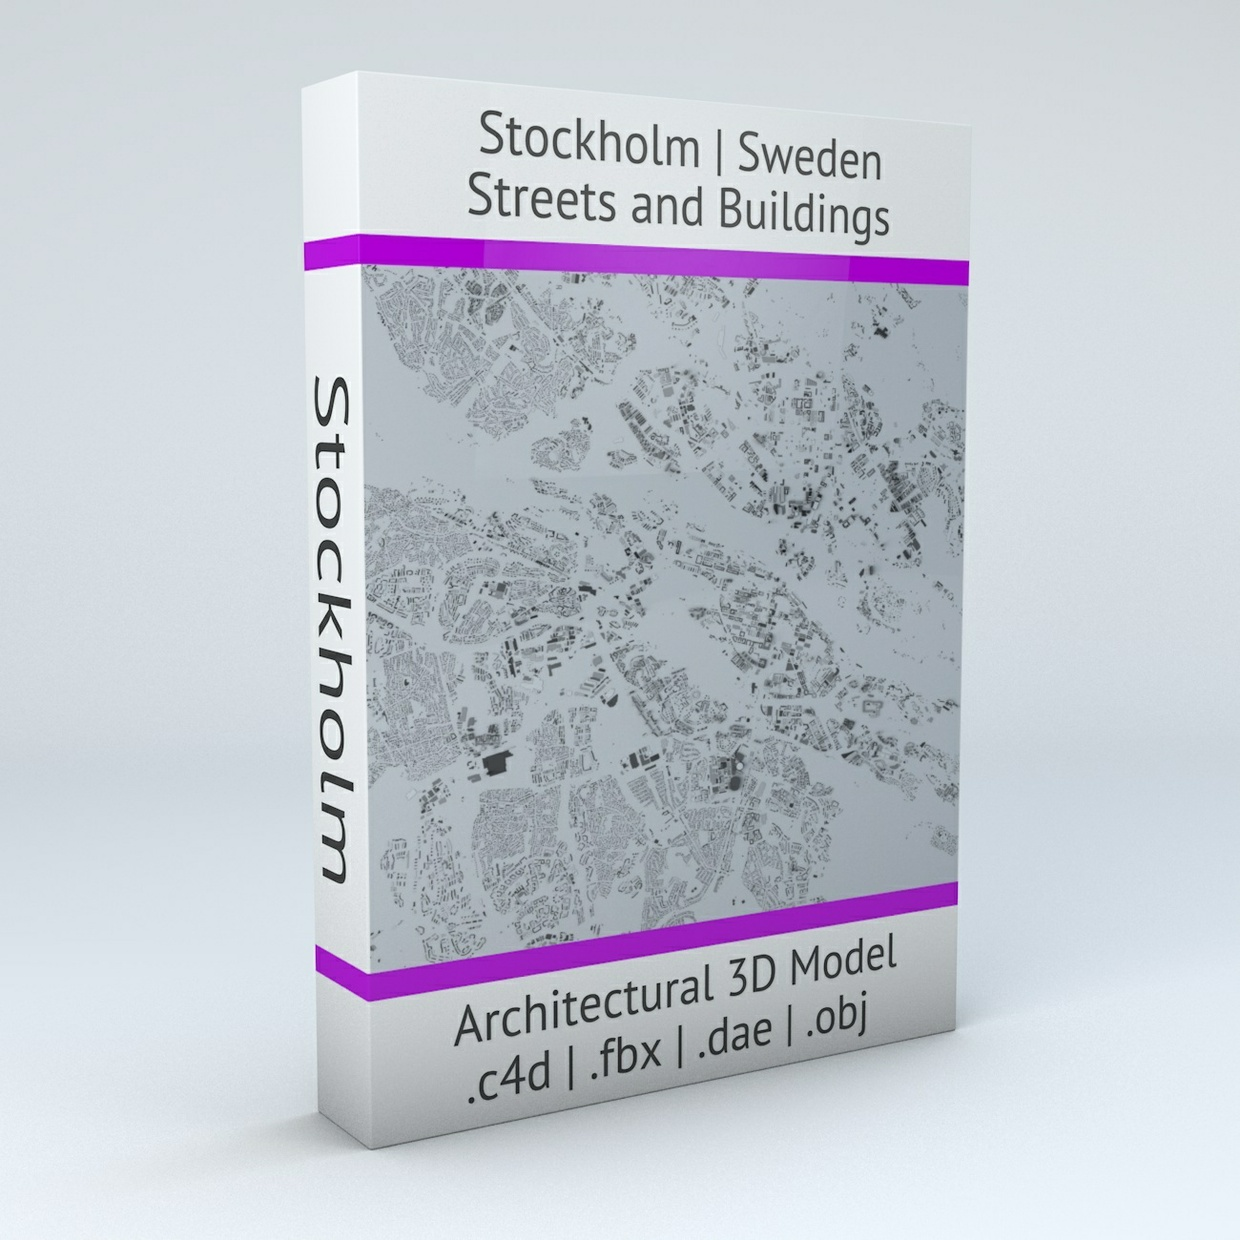 Stockholm Streets and Buildings Architectural 3D Model